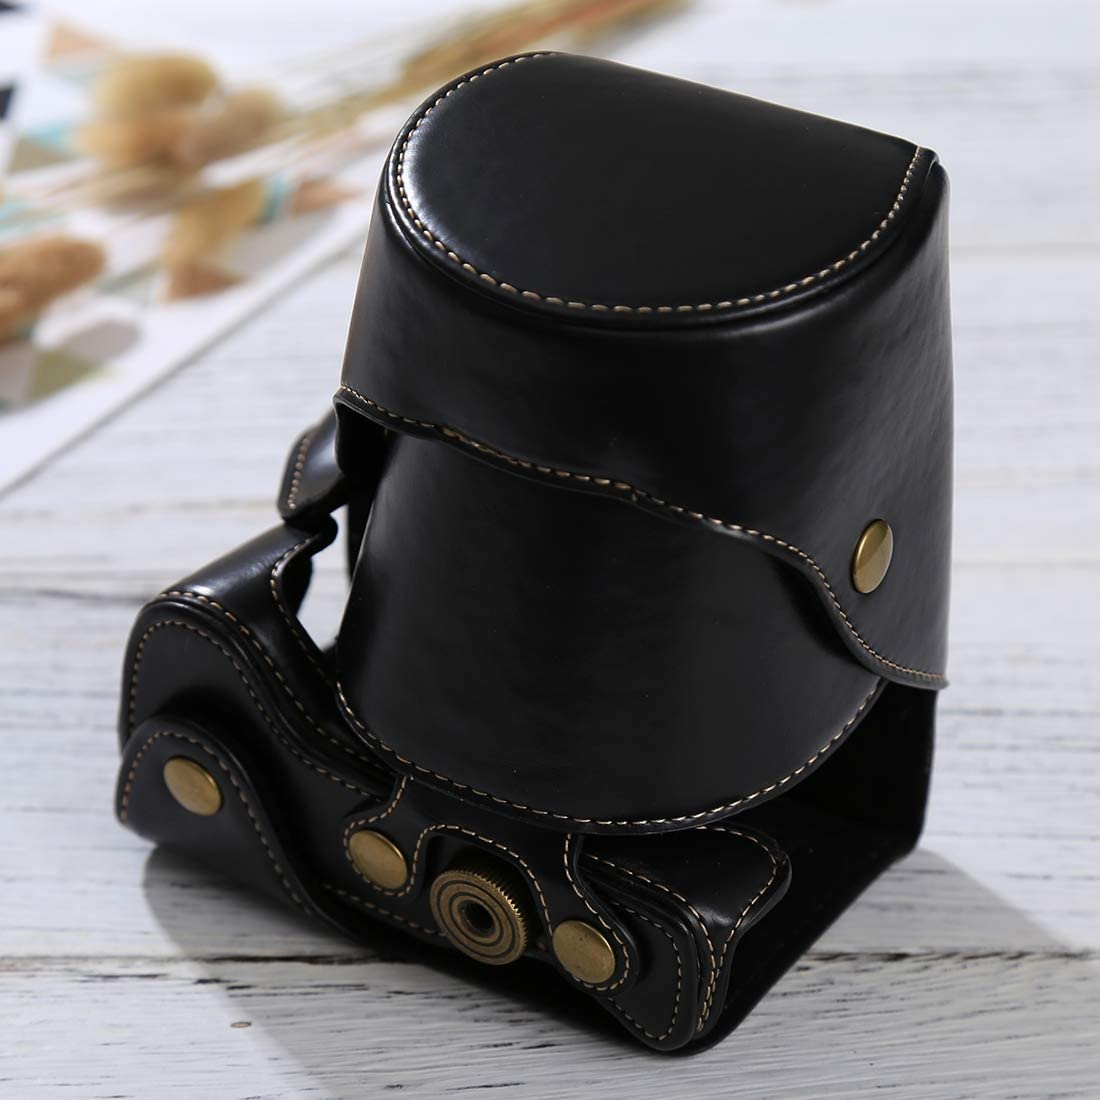 Black Color : Coffee Ychaoya Camera Bag Wuzpx Total Body Camera PU Leather Case Bag with Strap for Sony ILCE-6500 A6500